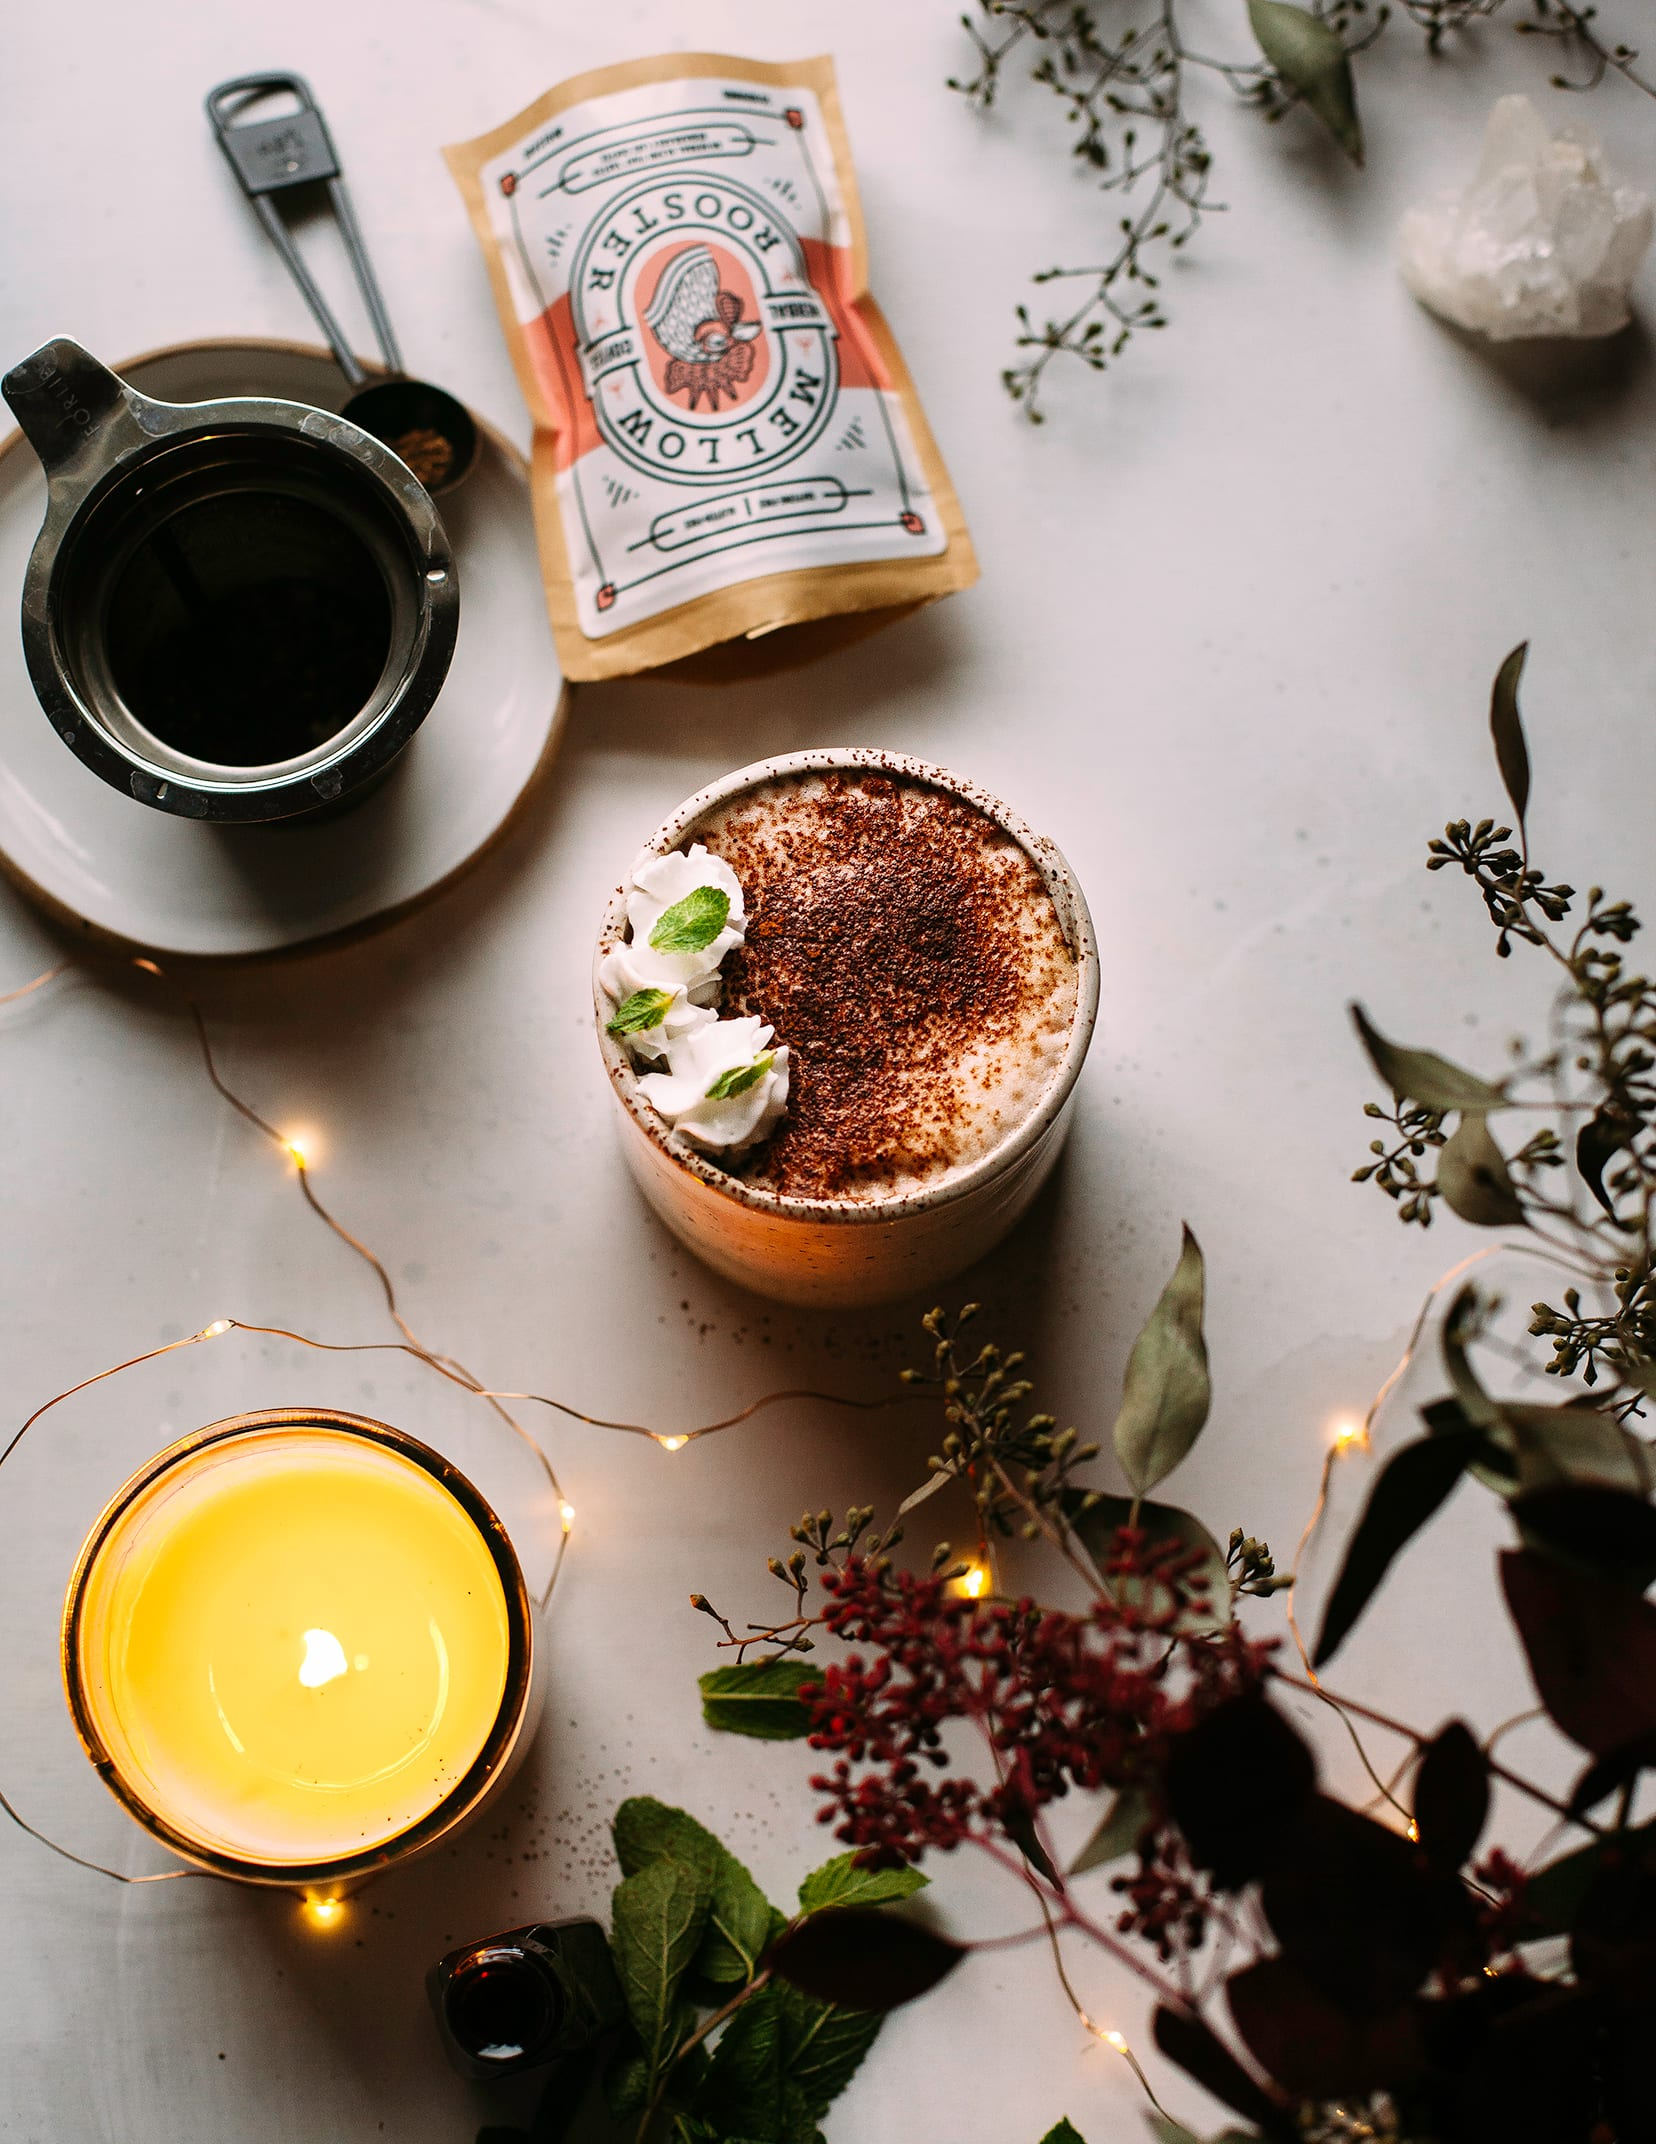 An overhead shot of a frothy drink topped with a dusting of cocoa. Nearby is a string of twinkle lights, some eucalyptus branches, and a bag of herbal coffee.